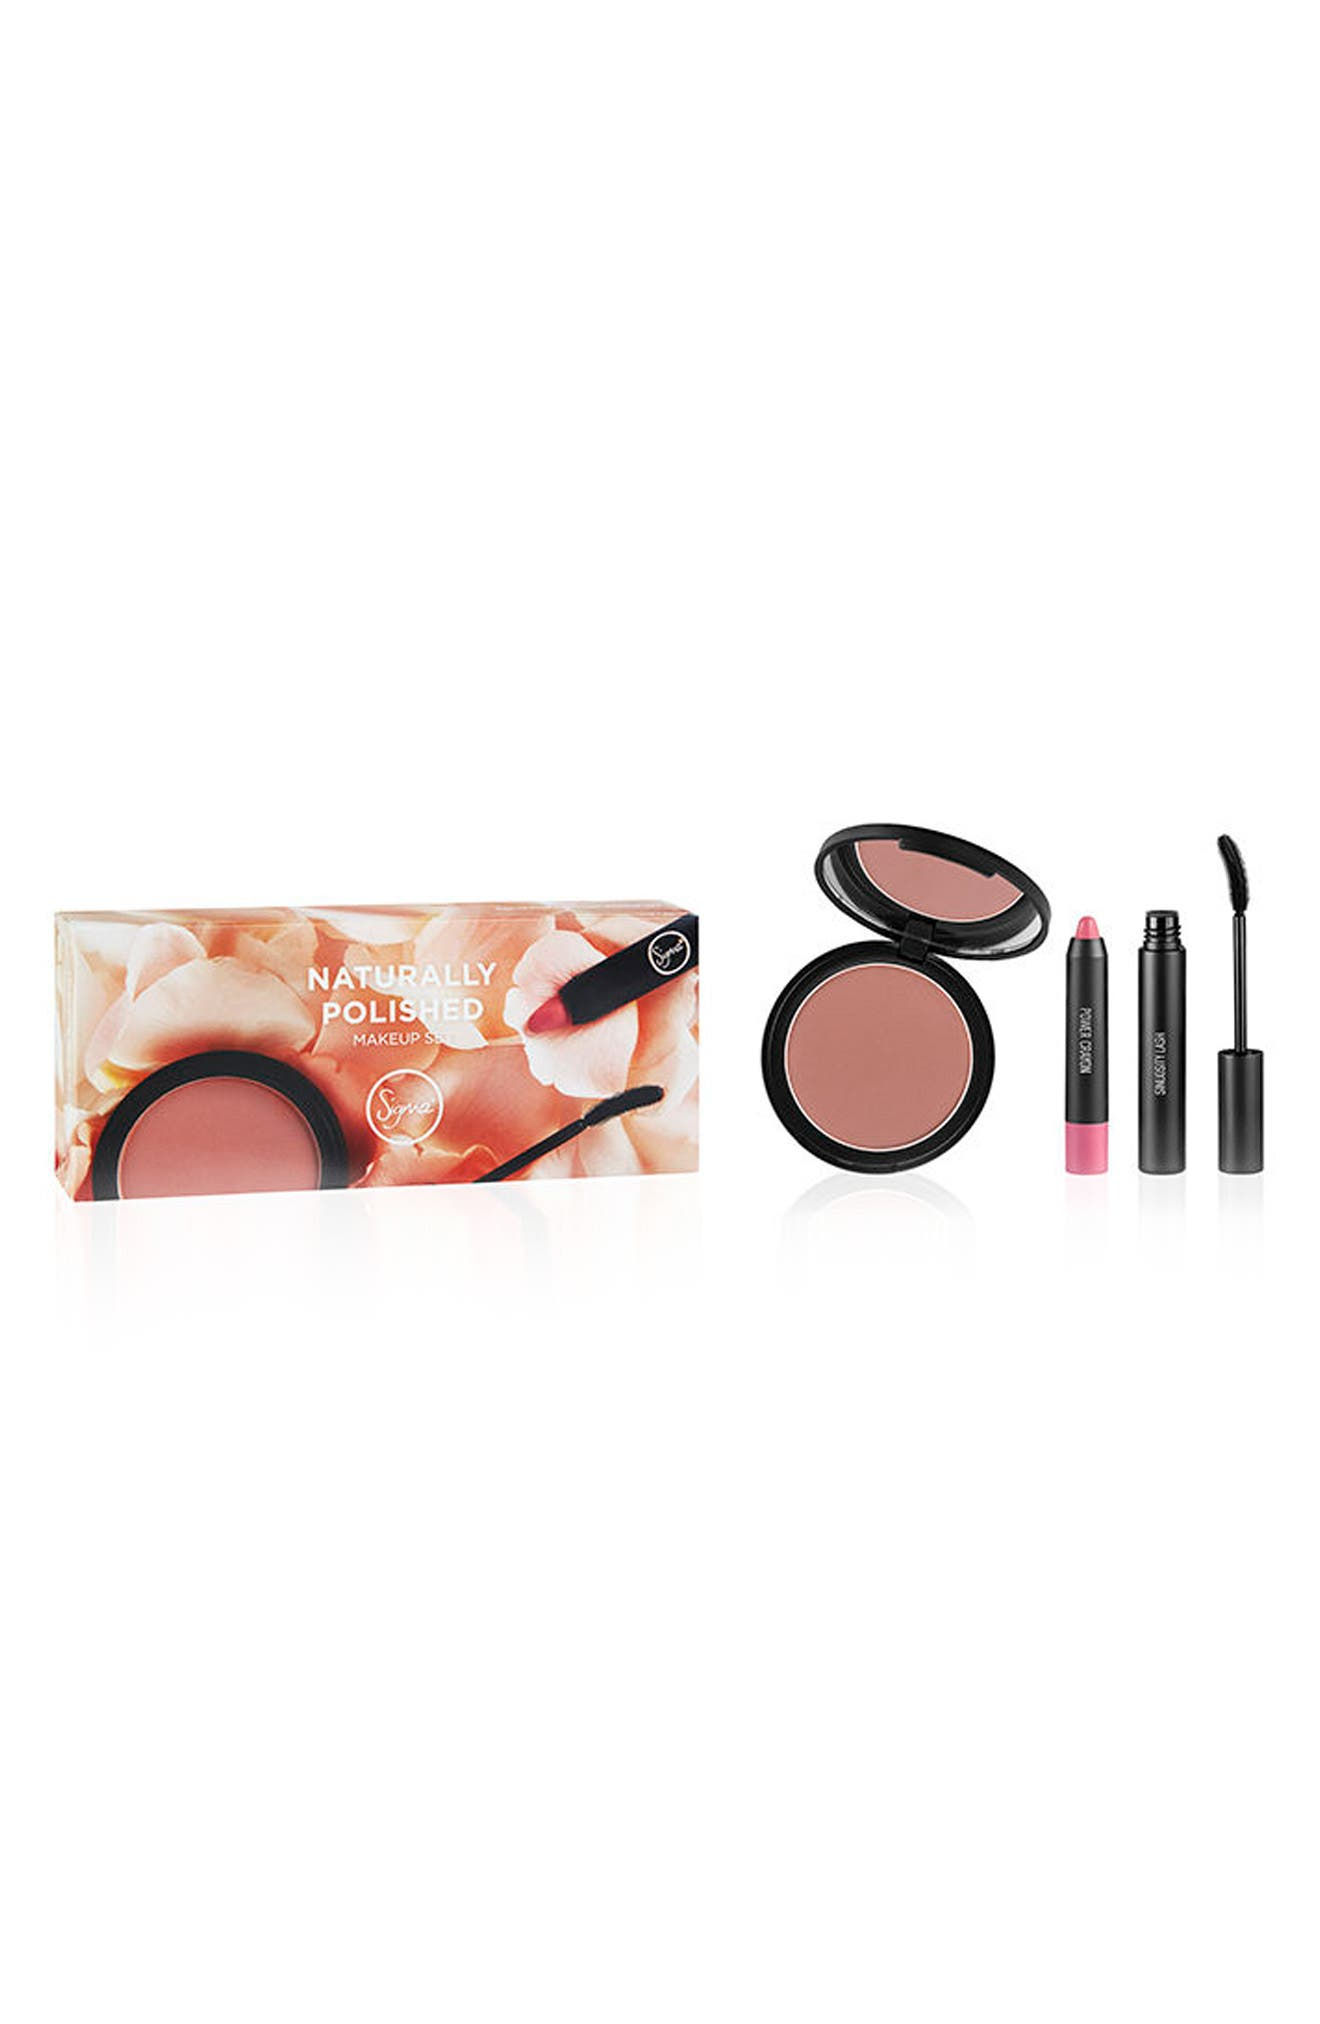 Naturally Polished Makeup Set,                         Main,                         color, No Color